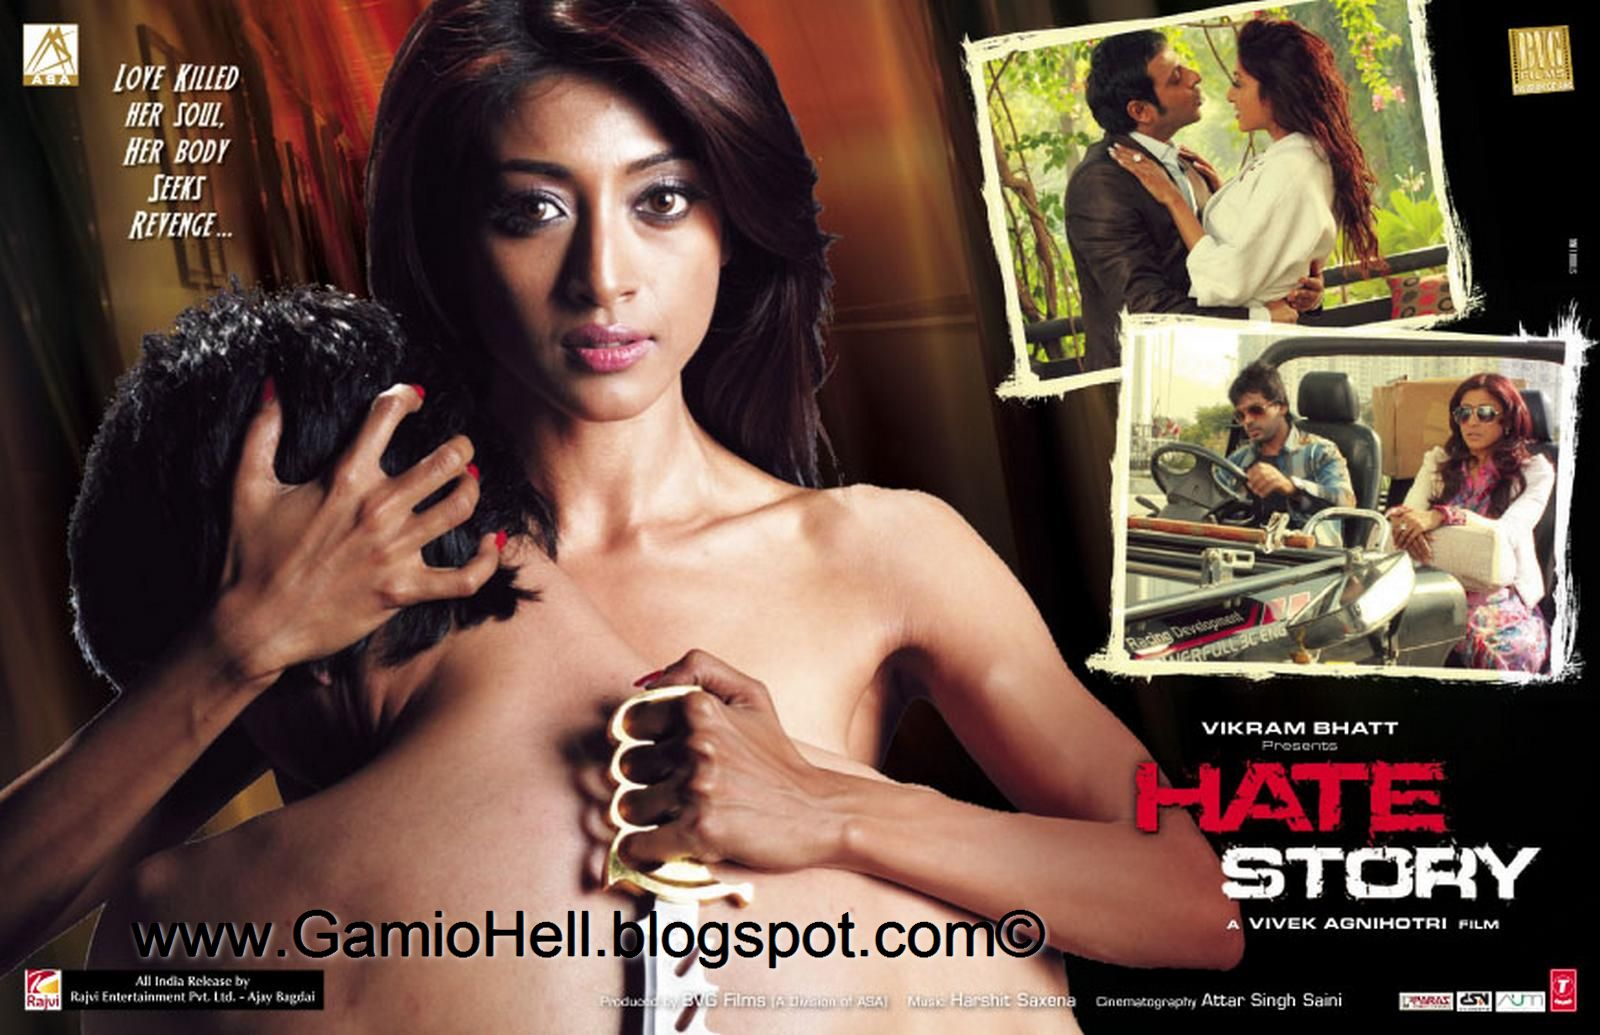 Hate Story (2012) Hindi Movie DVDRip 400Mb Mediafire Links ...